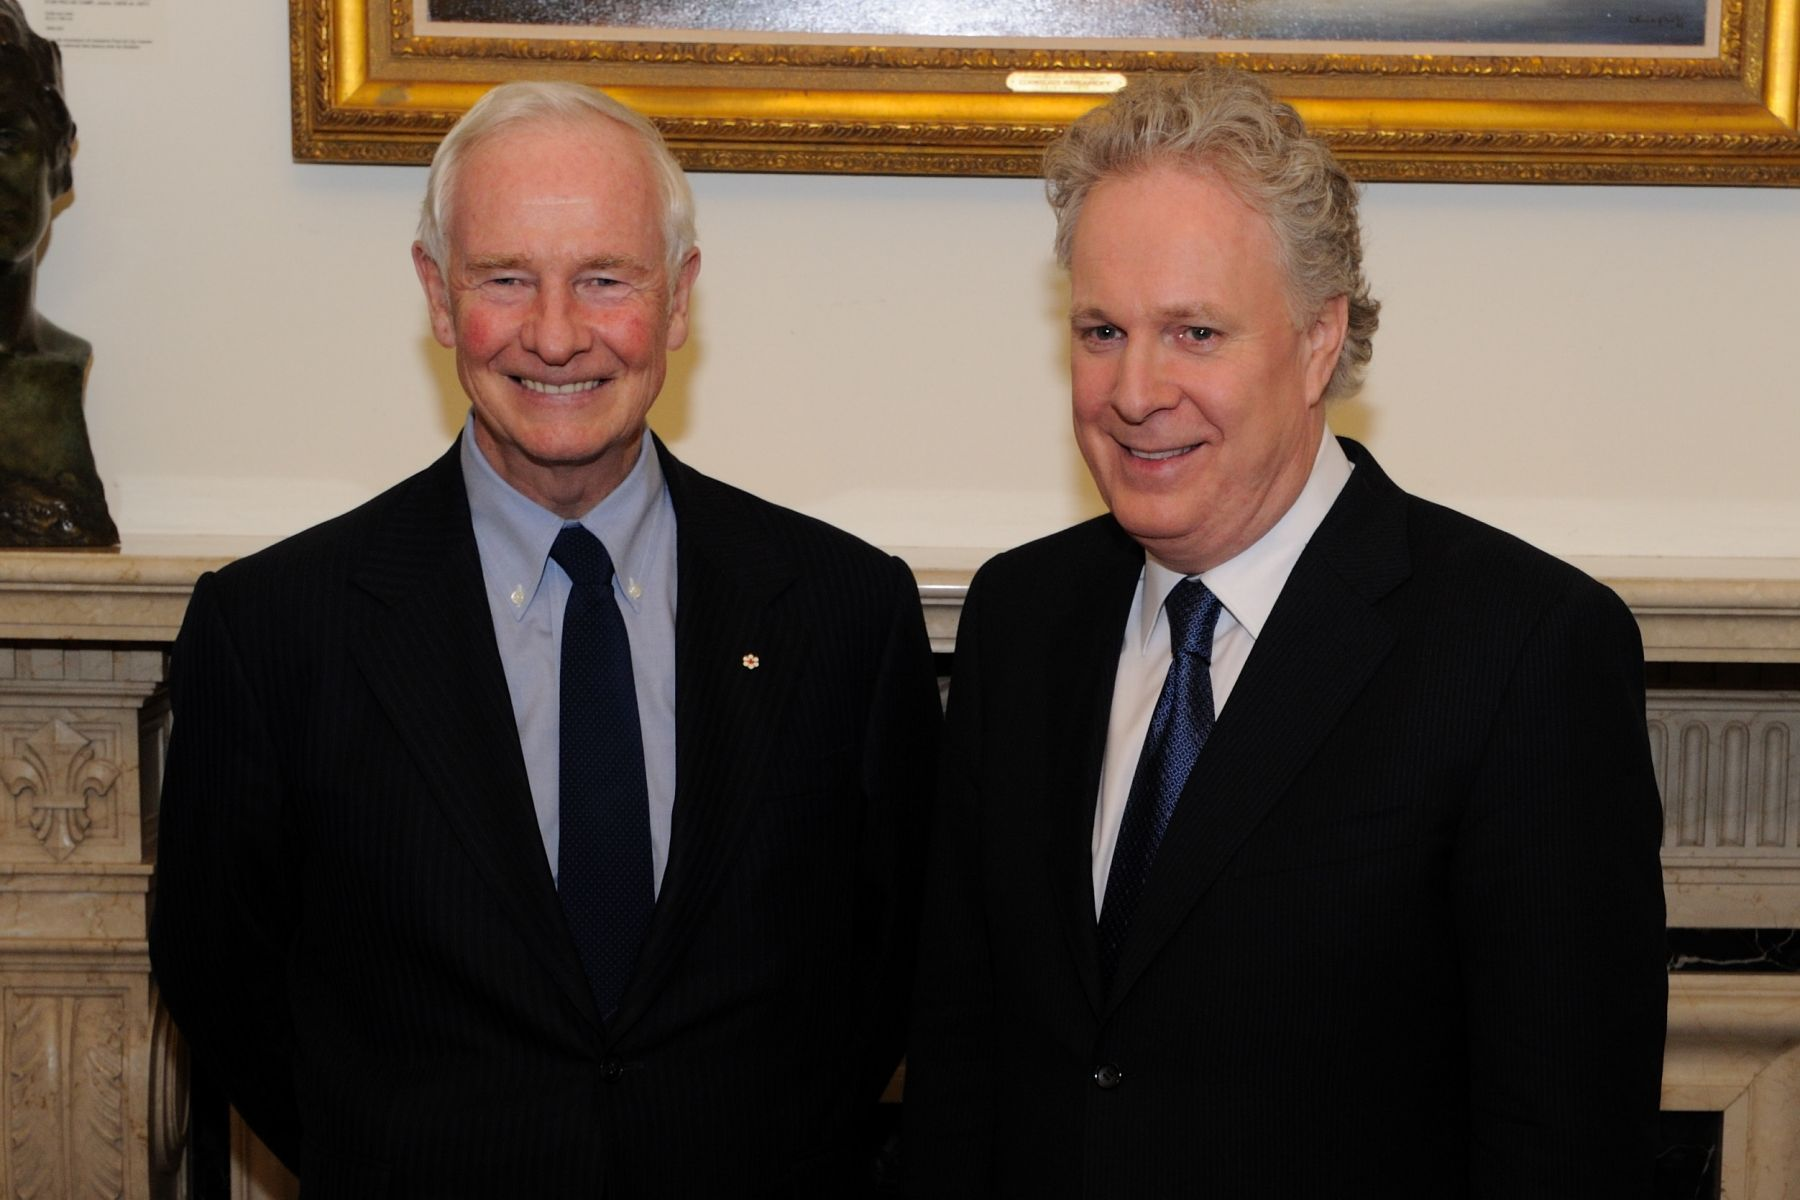 During his first visit to Québec city, His Excellency met the Premier of Québec, Jean Charest.